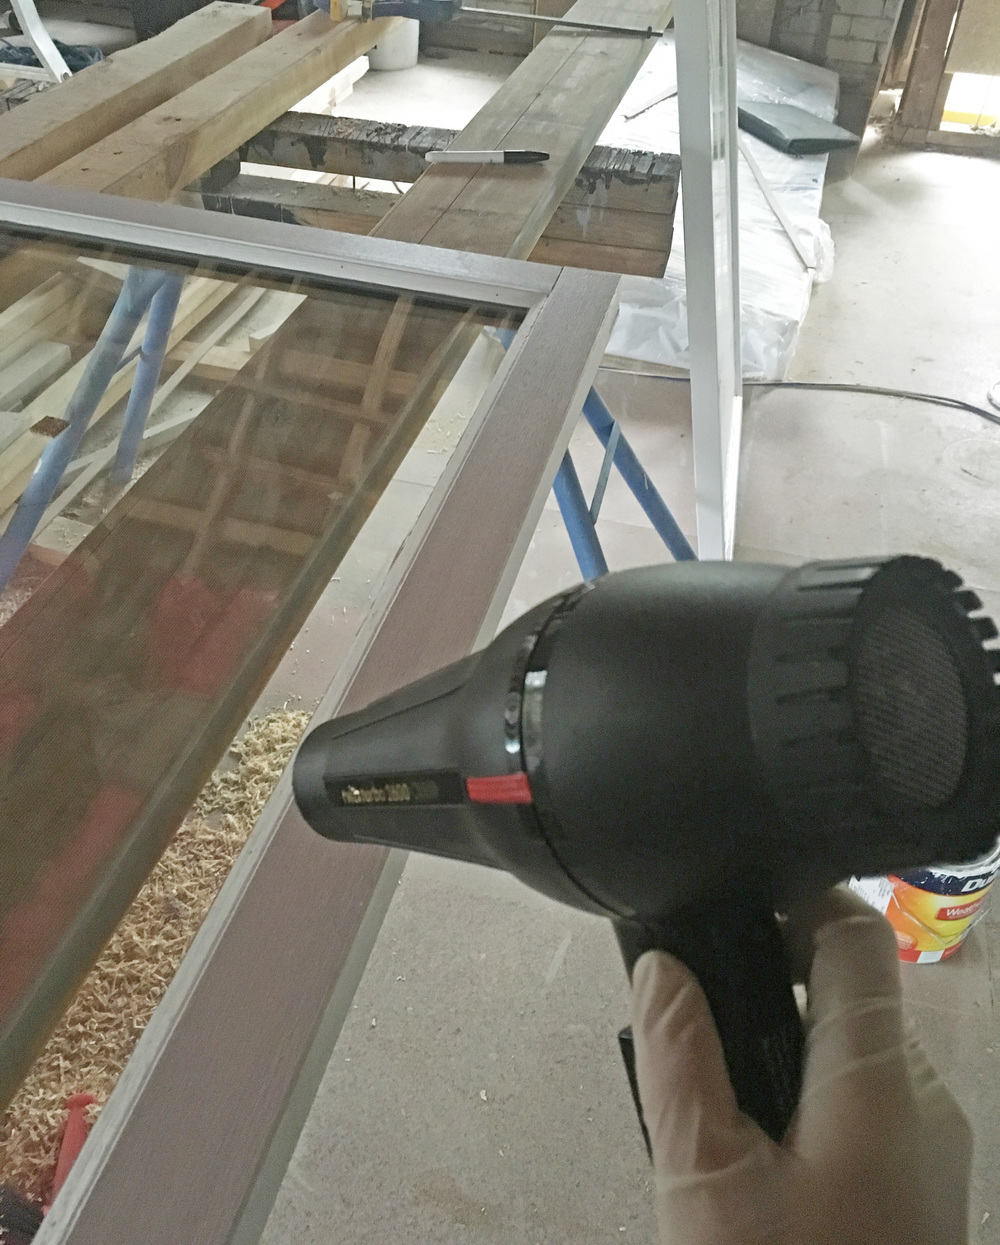 Using a hairdryer to assist paint to dryer faster in wet weather